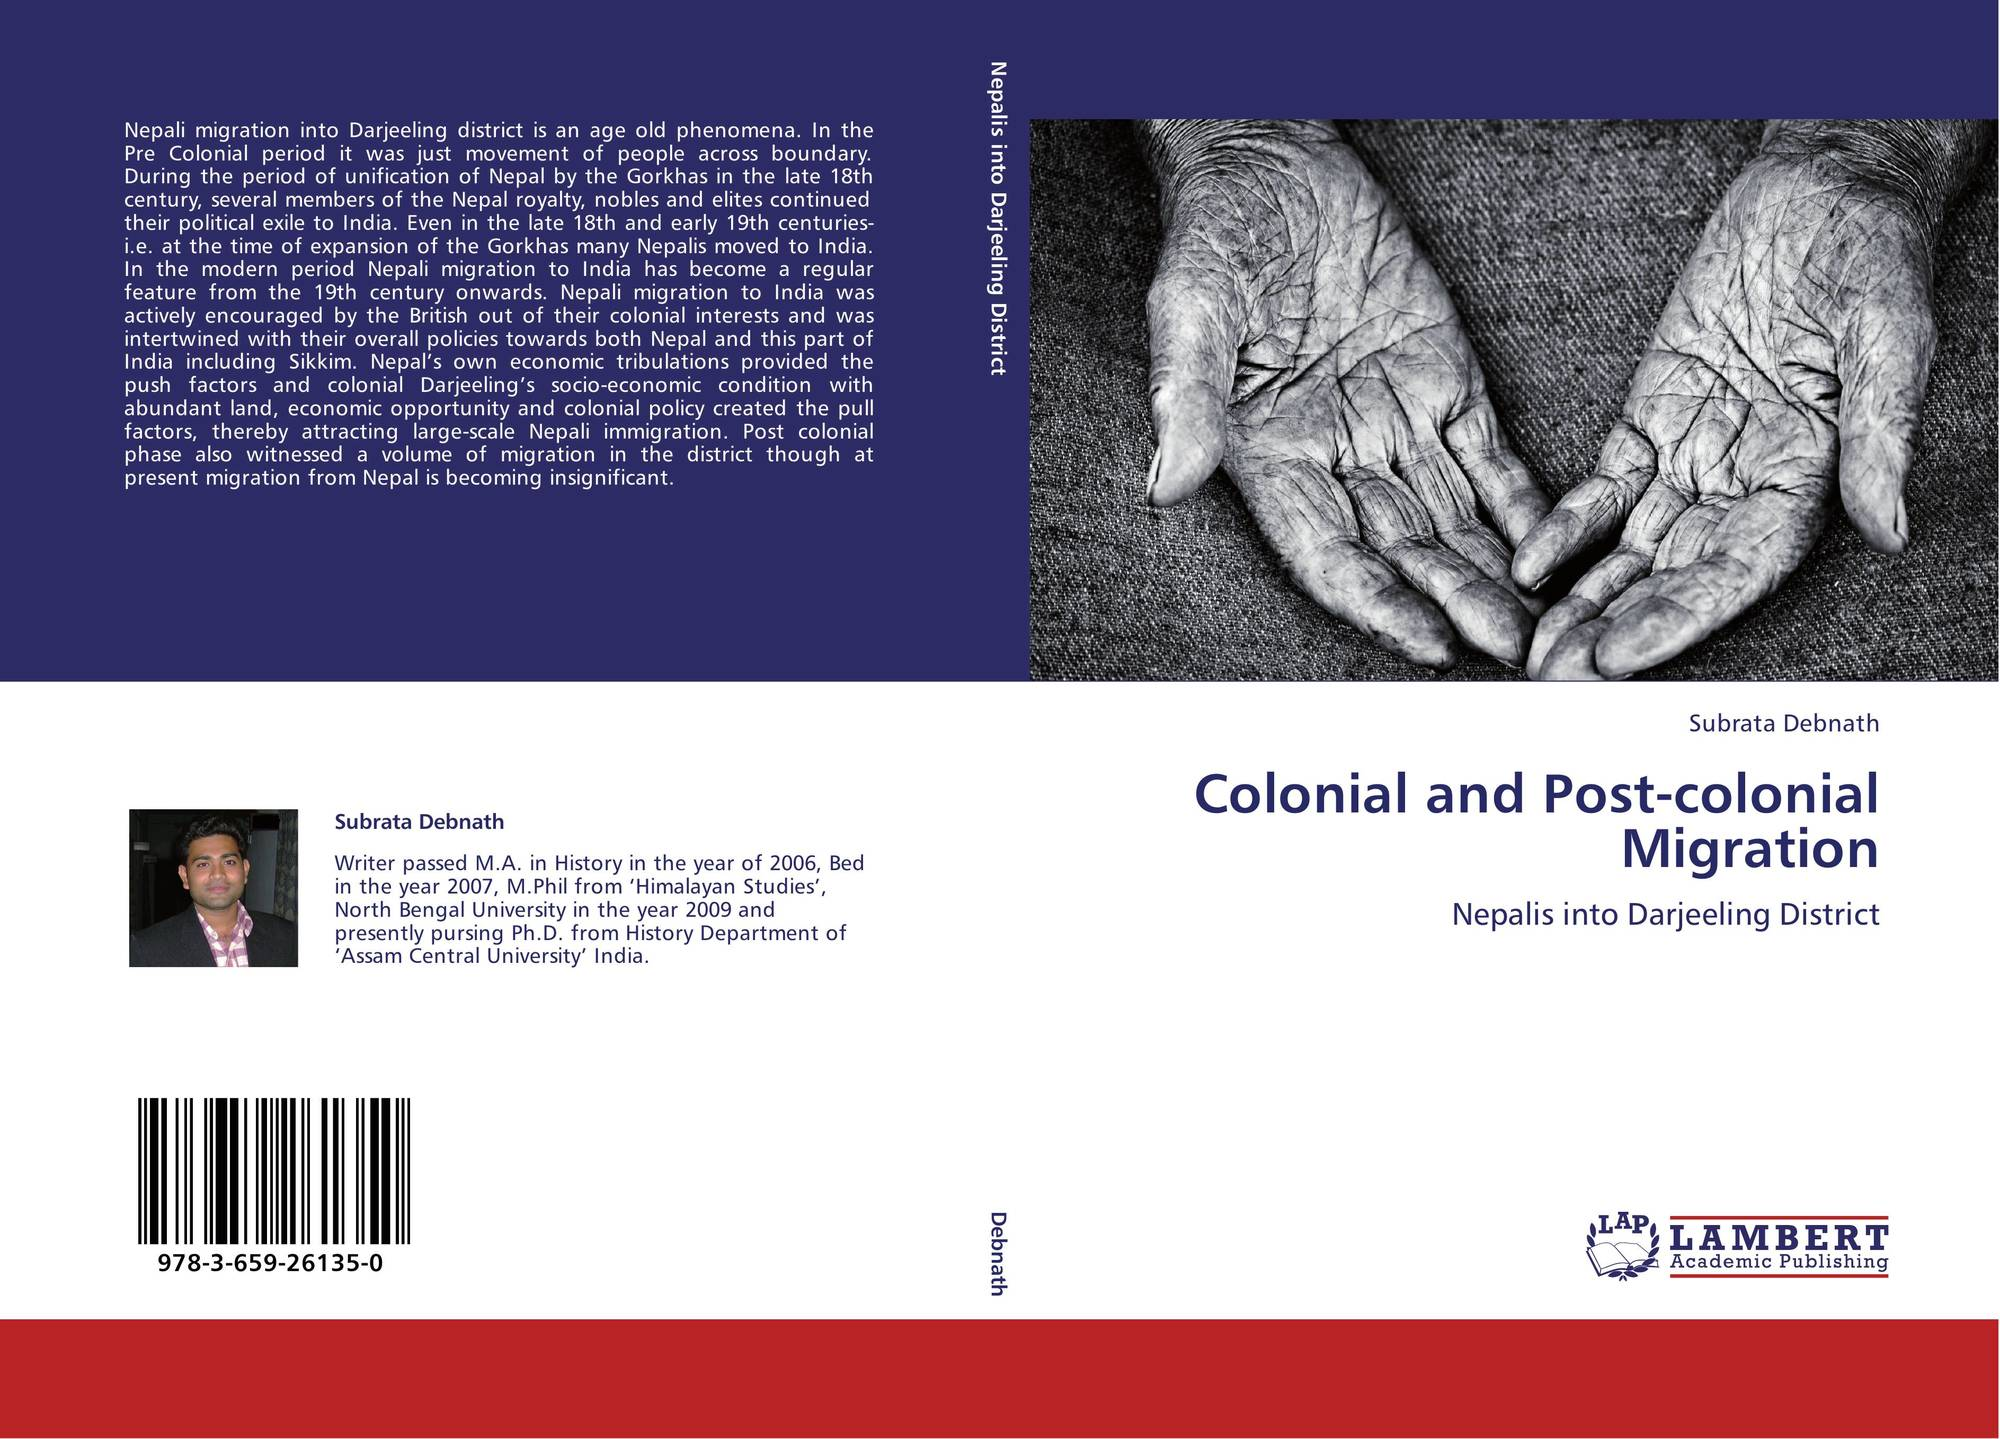 the rise of colonialism and its impact on modern society Colonialism and its agents played in reconstructing the class relations and social structures in argues that beyond the impact colonialism brought on the economic system, it also introduced intense conflict that ensued between these two class interests that led to the rise of anti-colonial.